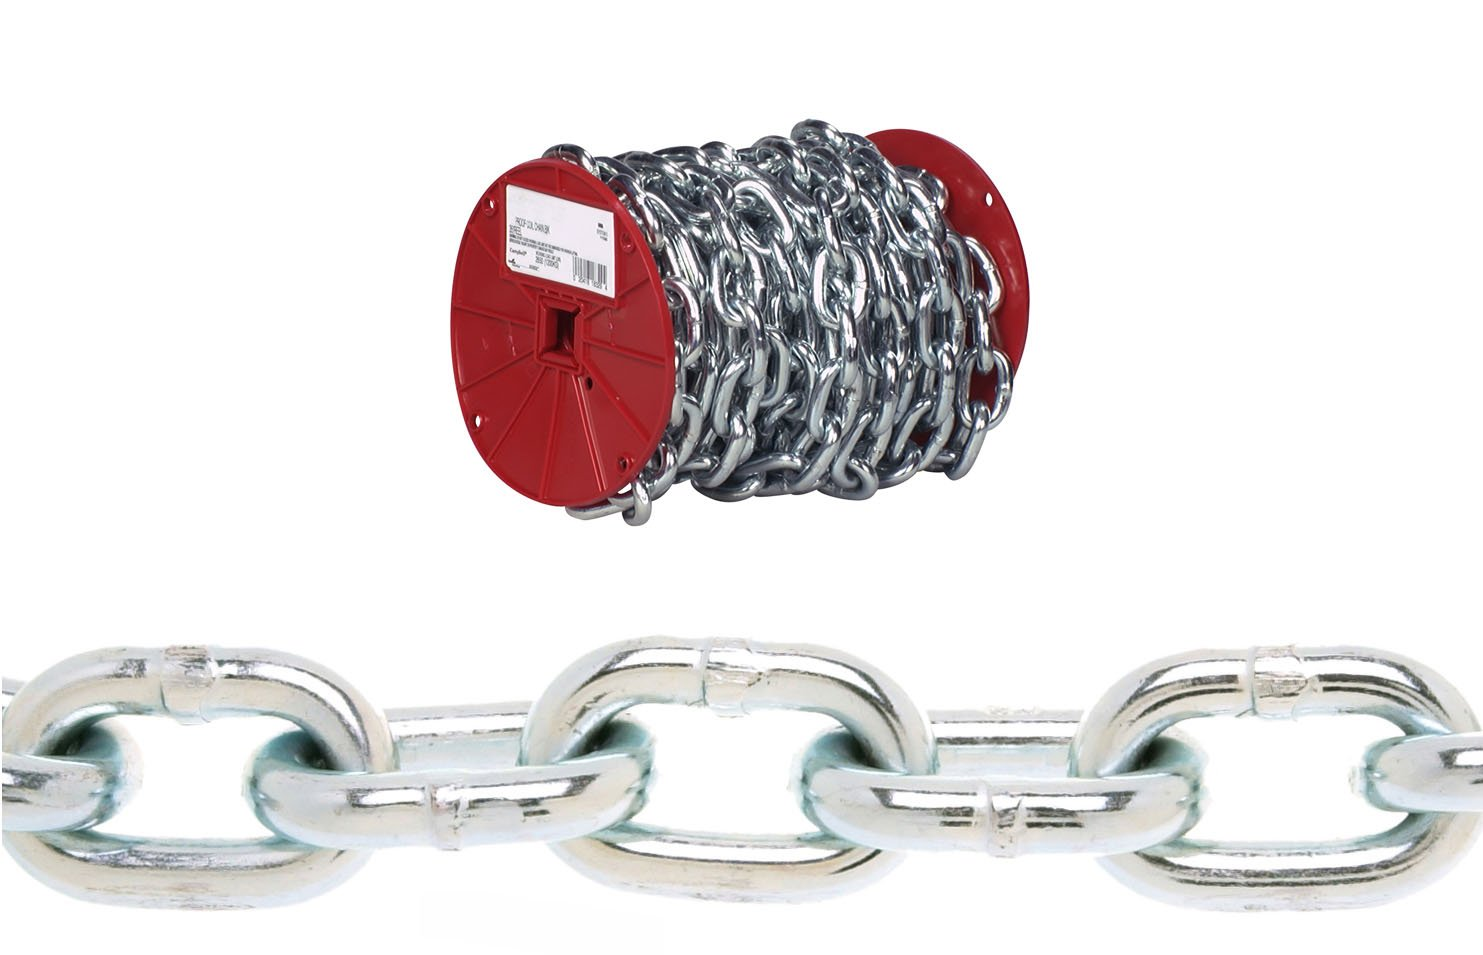 CAMPBELL 0722127 System 3 Grade 30 Low Carbon Steel Proof Coil Chain, Zinc Plated, 1/4-Inch Trade, 0.26-Inch Diameter, 1300-Pound Load Capacity, 65 Feet Reel 1/4 Inch Trade 0.26 Inch Diameter 1300 lbs. Load Capacity